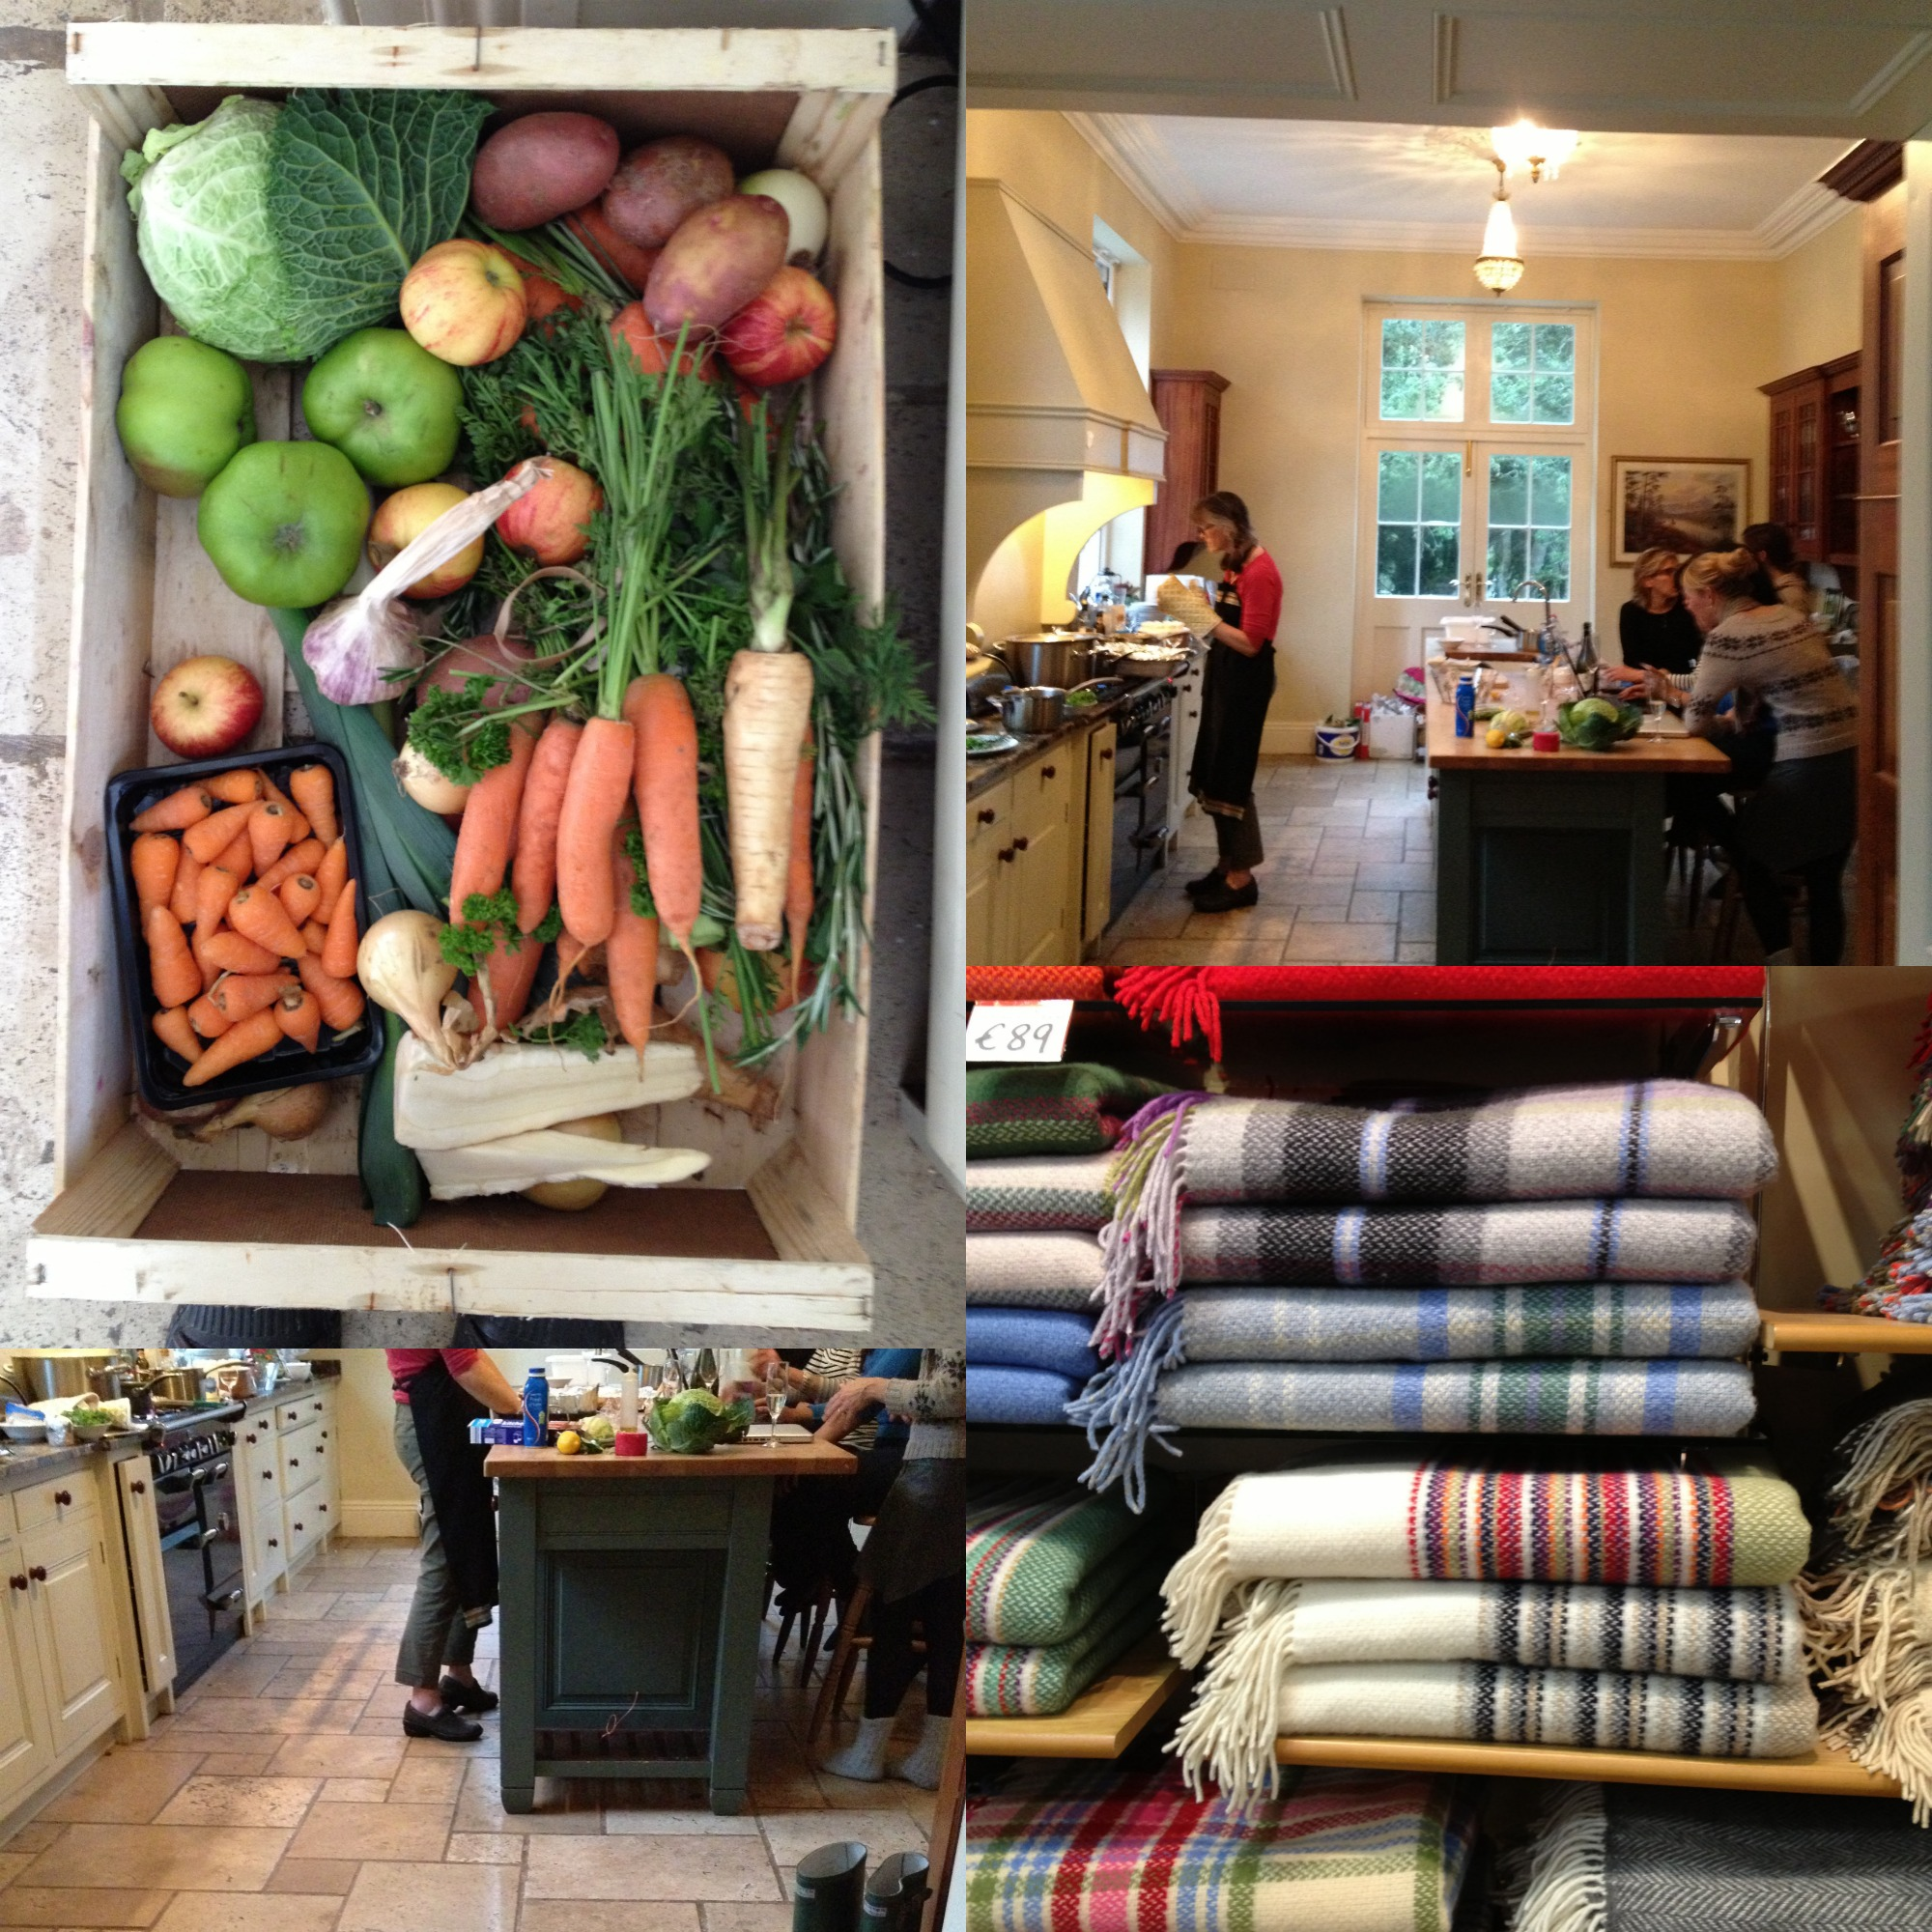 left top: food left for the animals, left bottom: Alison in the kitchen, top right: Alison cooking, bottom right: our detour to the woollen mill.